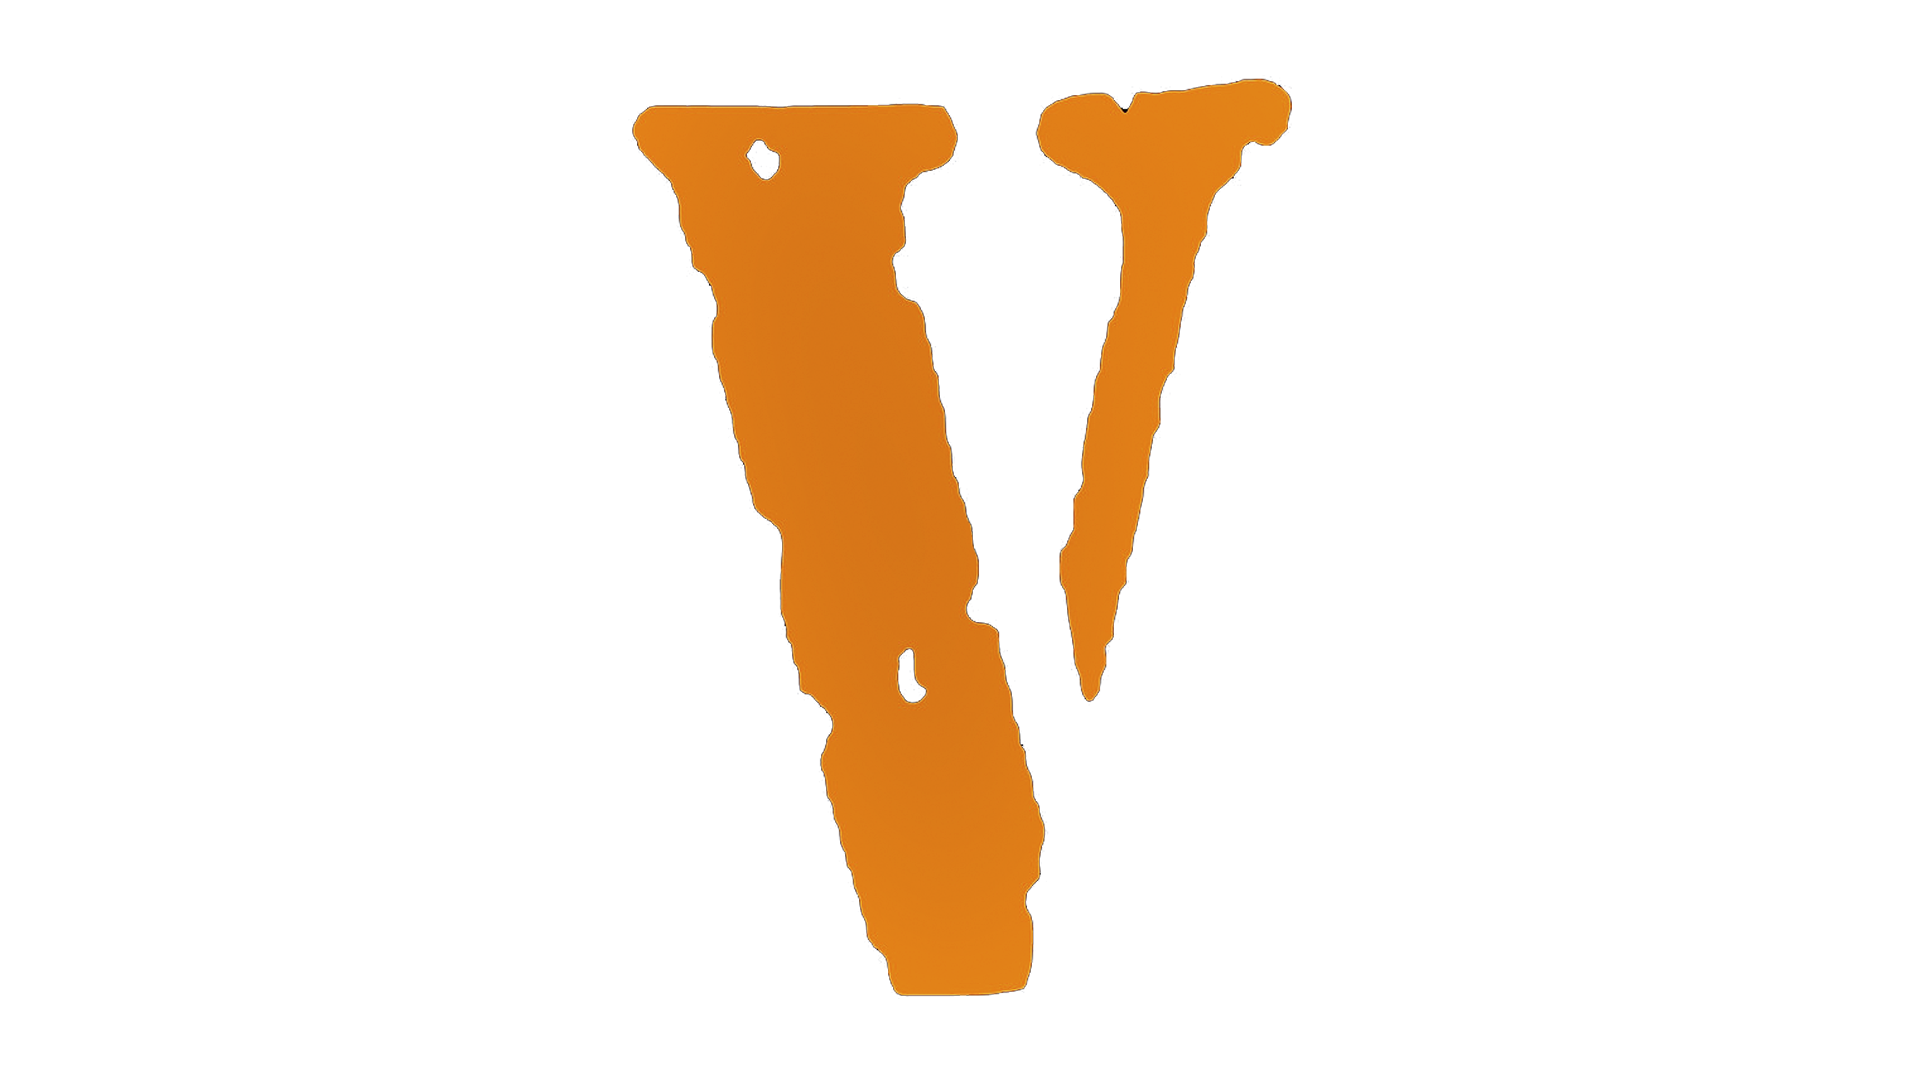 Meaning Vlone logo and symbol.